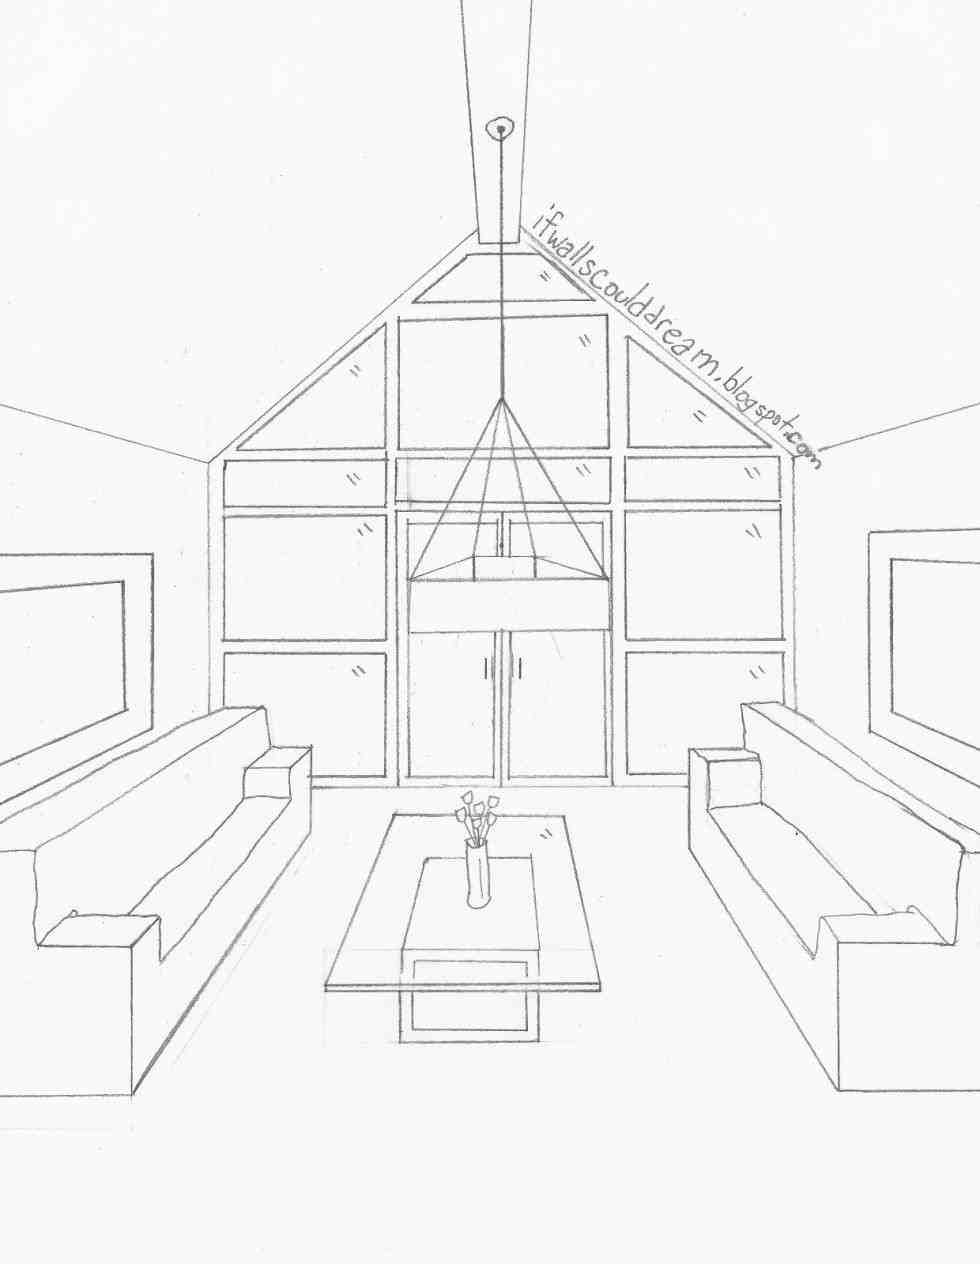 House Drawing Ideas At Getdrawings Com Free For Personal